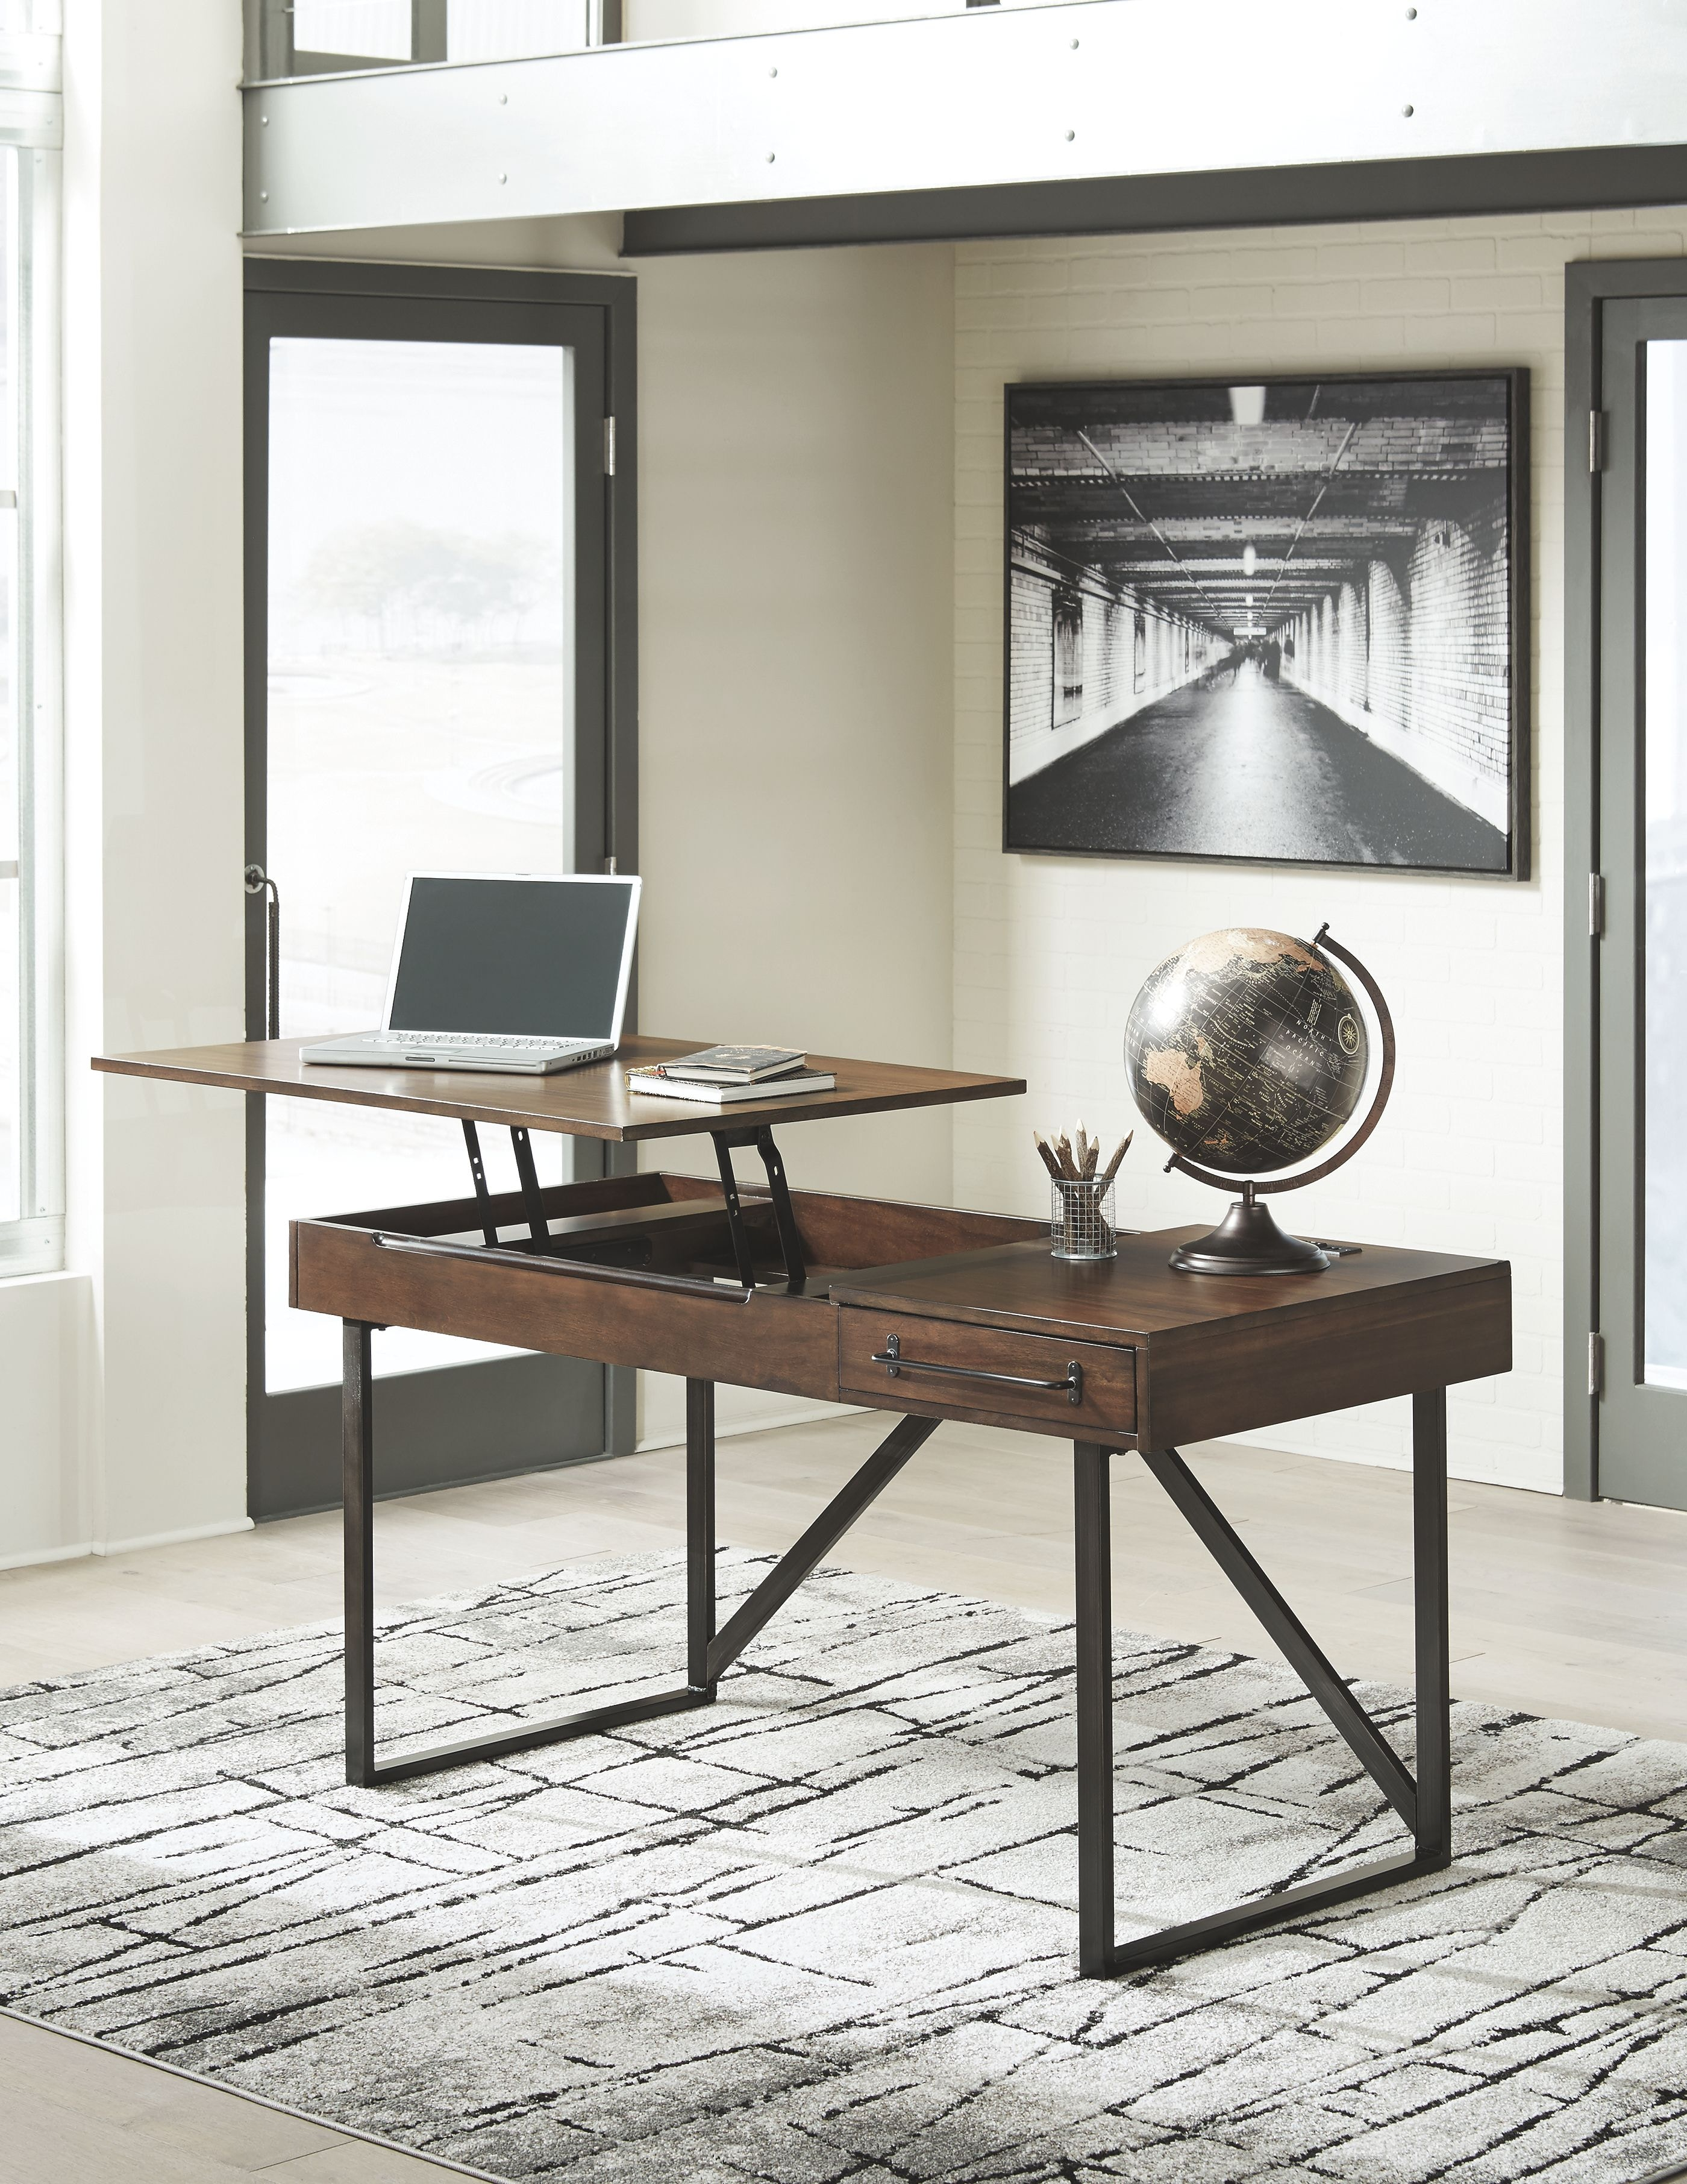 Signature Design By Ashley Home Office Lift Top Desk H633 134